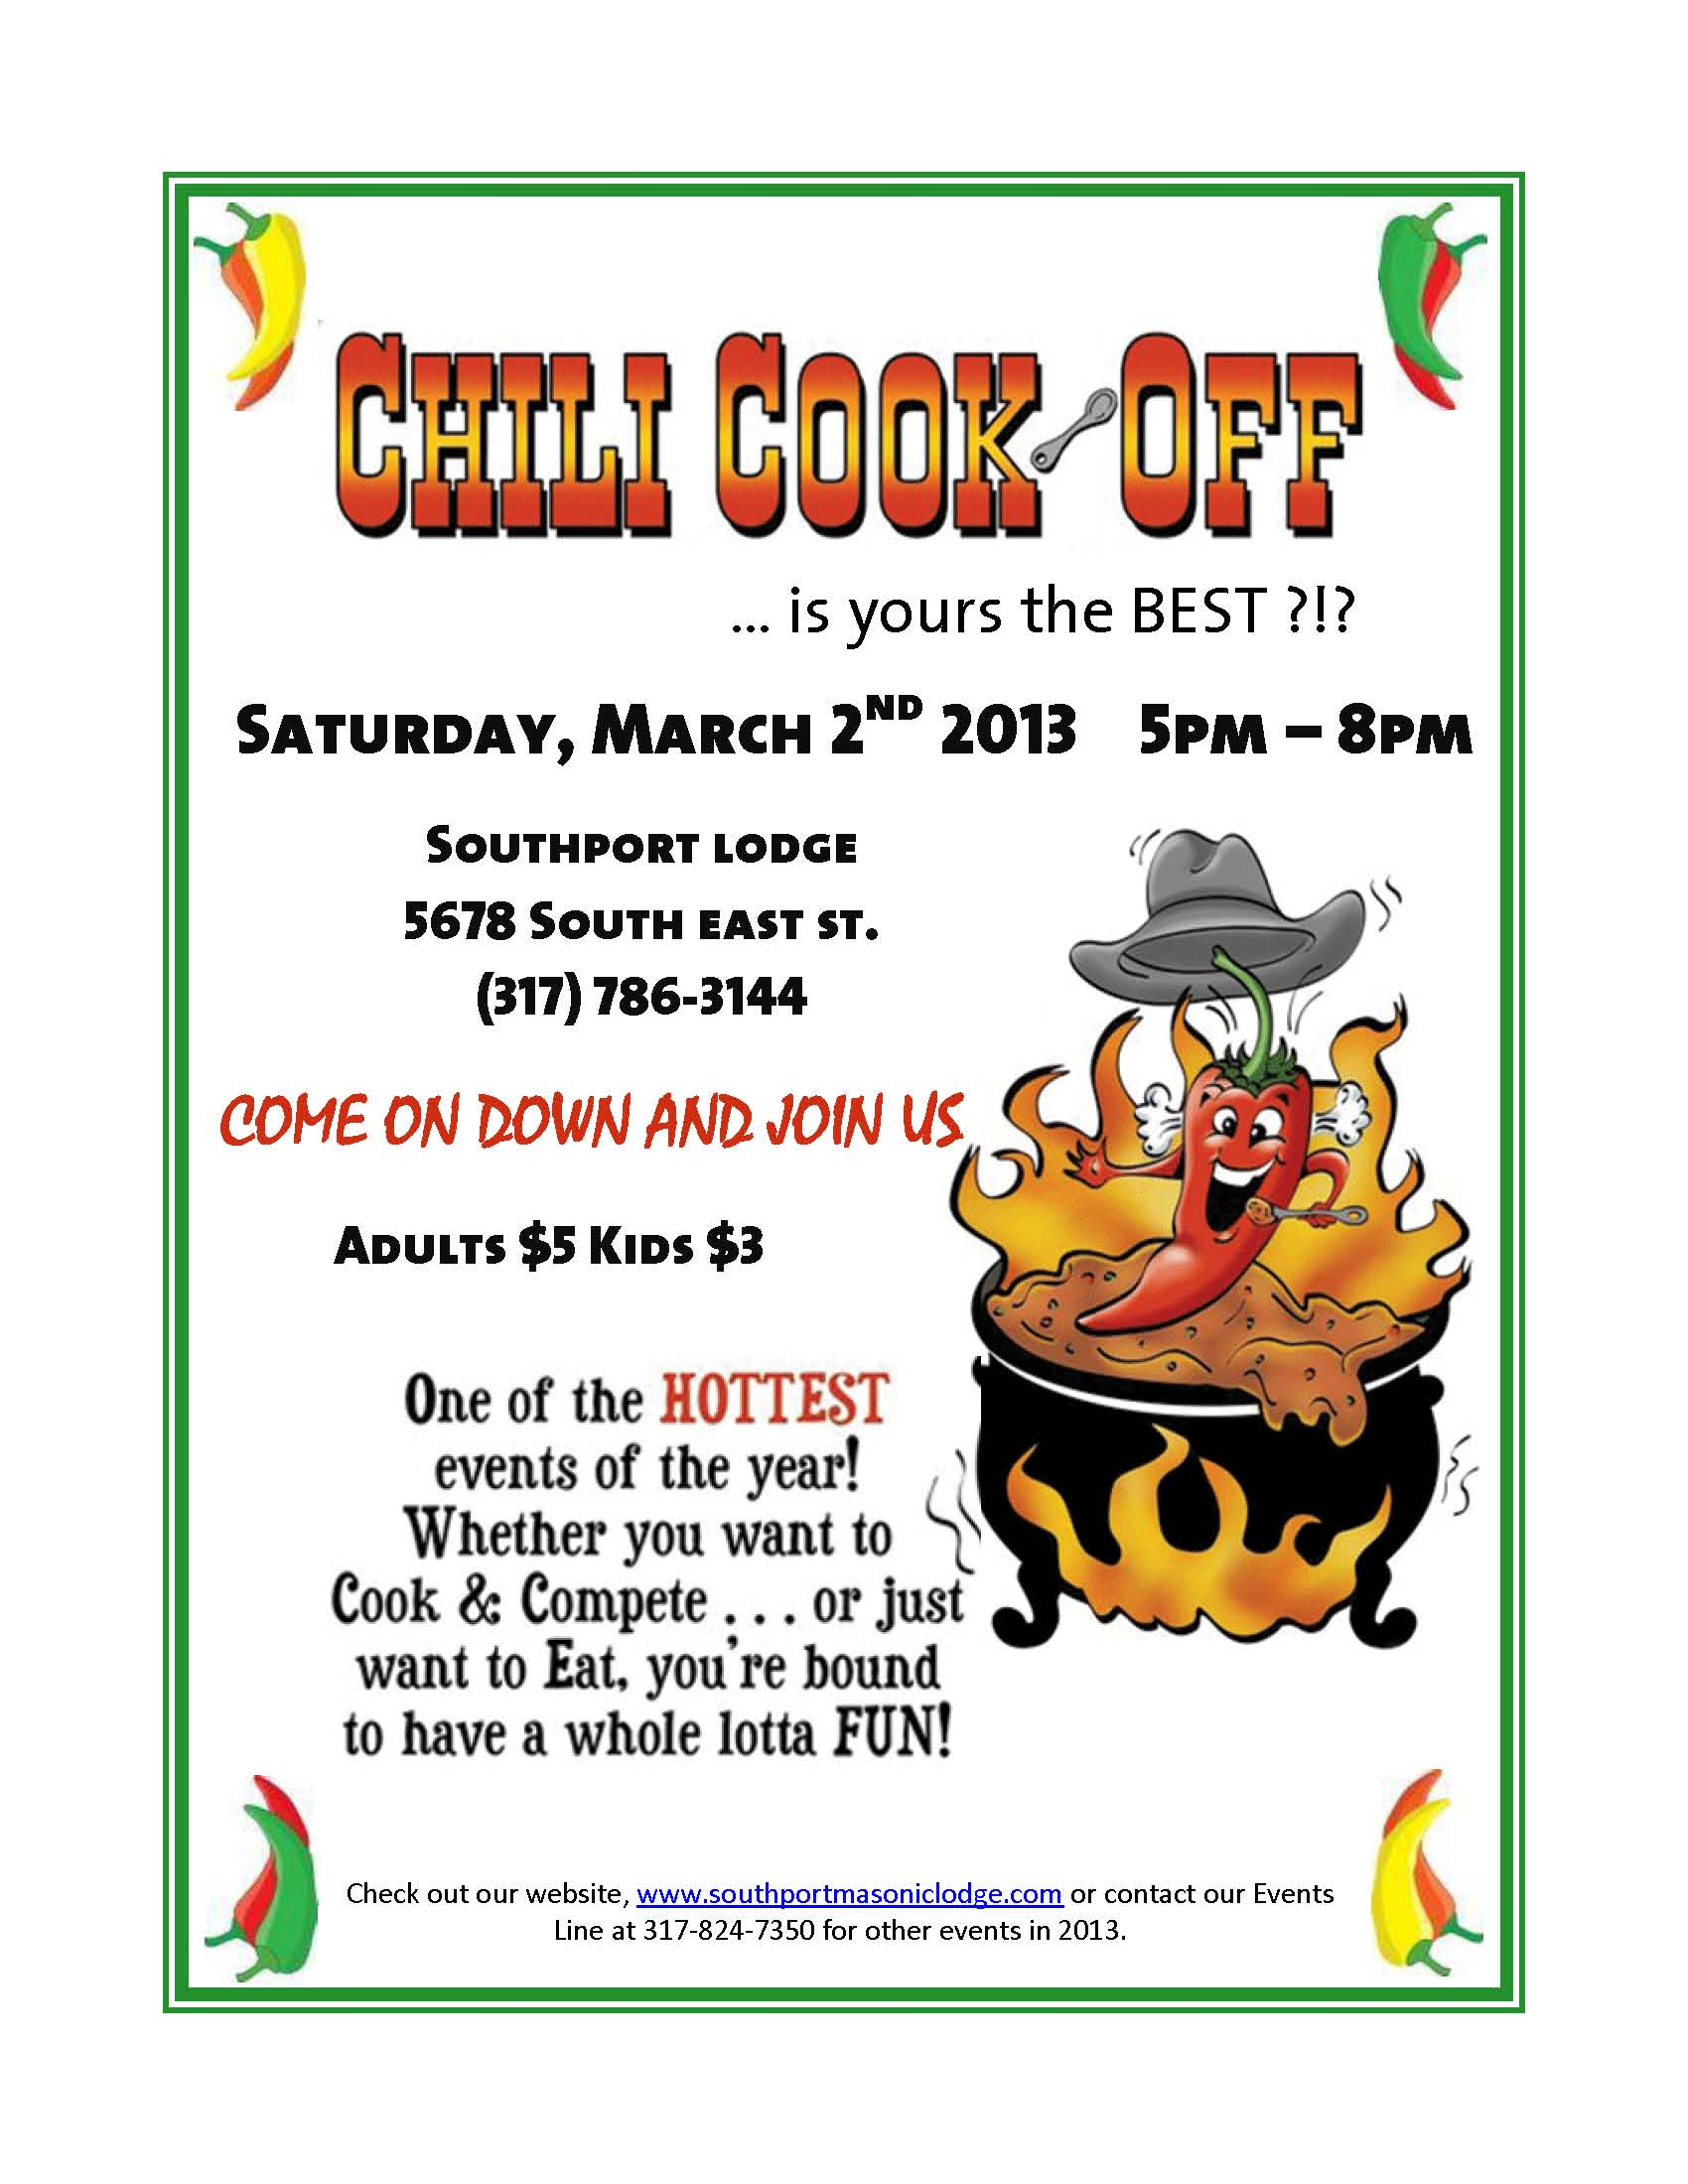 Southport masonic lodge events chili cookoff and each year brings out more participants were looking forward to another great year and hope it brings out even more participants xflitez Choice Image